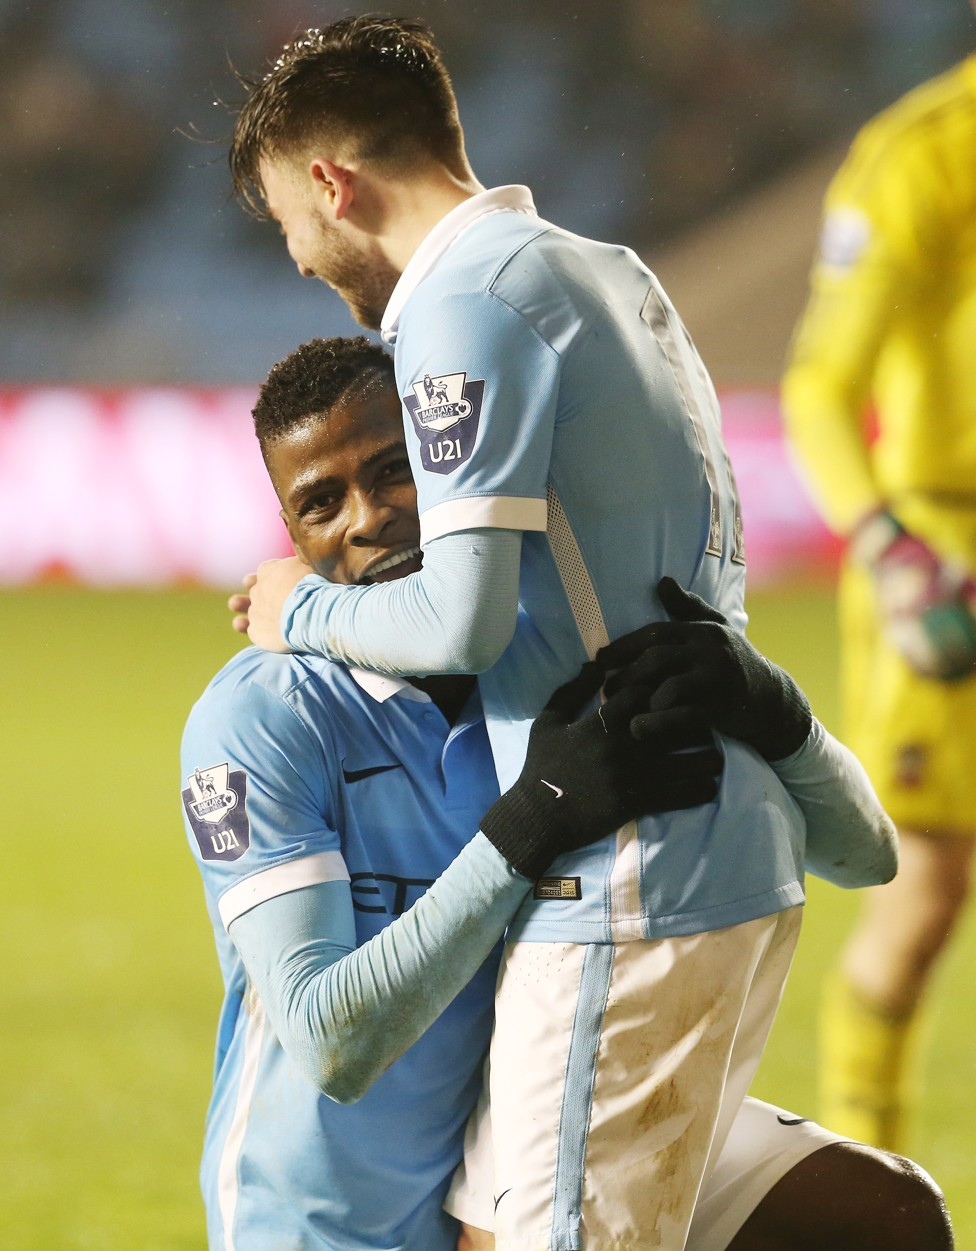 BIG HUG: Roberts and Iheanacho embrace during a City EDS game in 2015